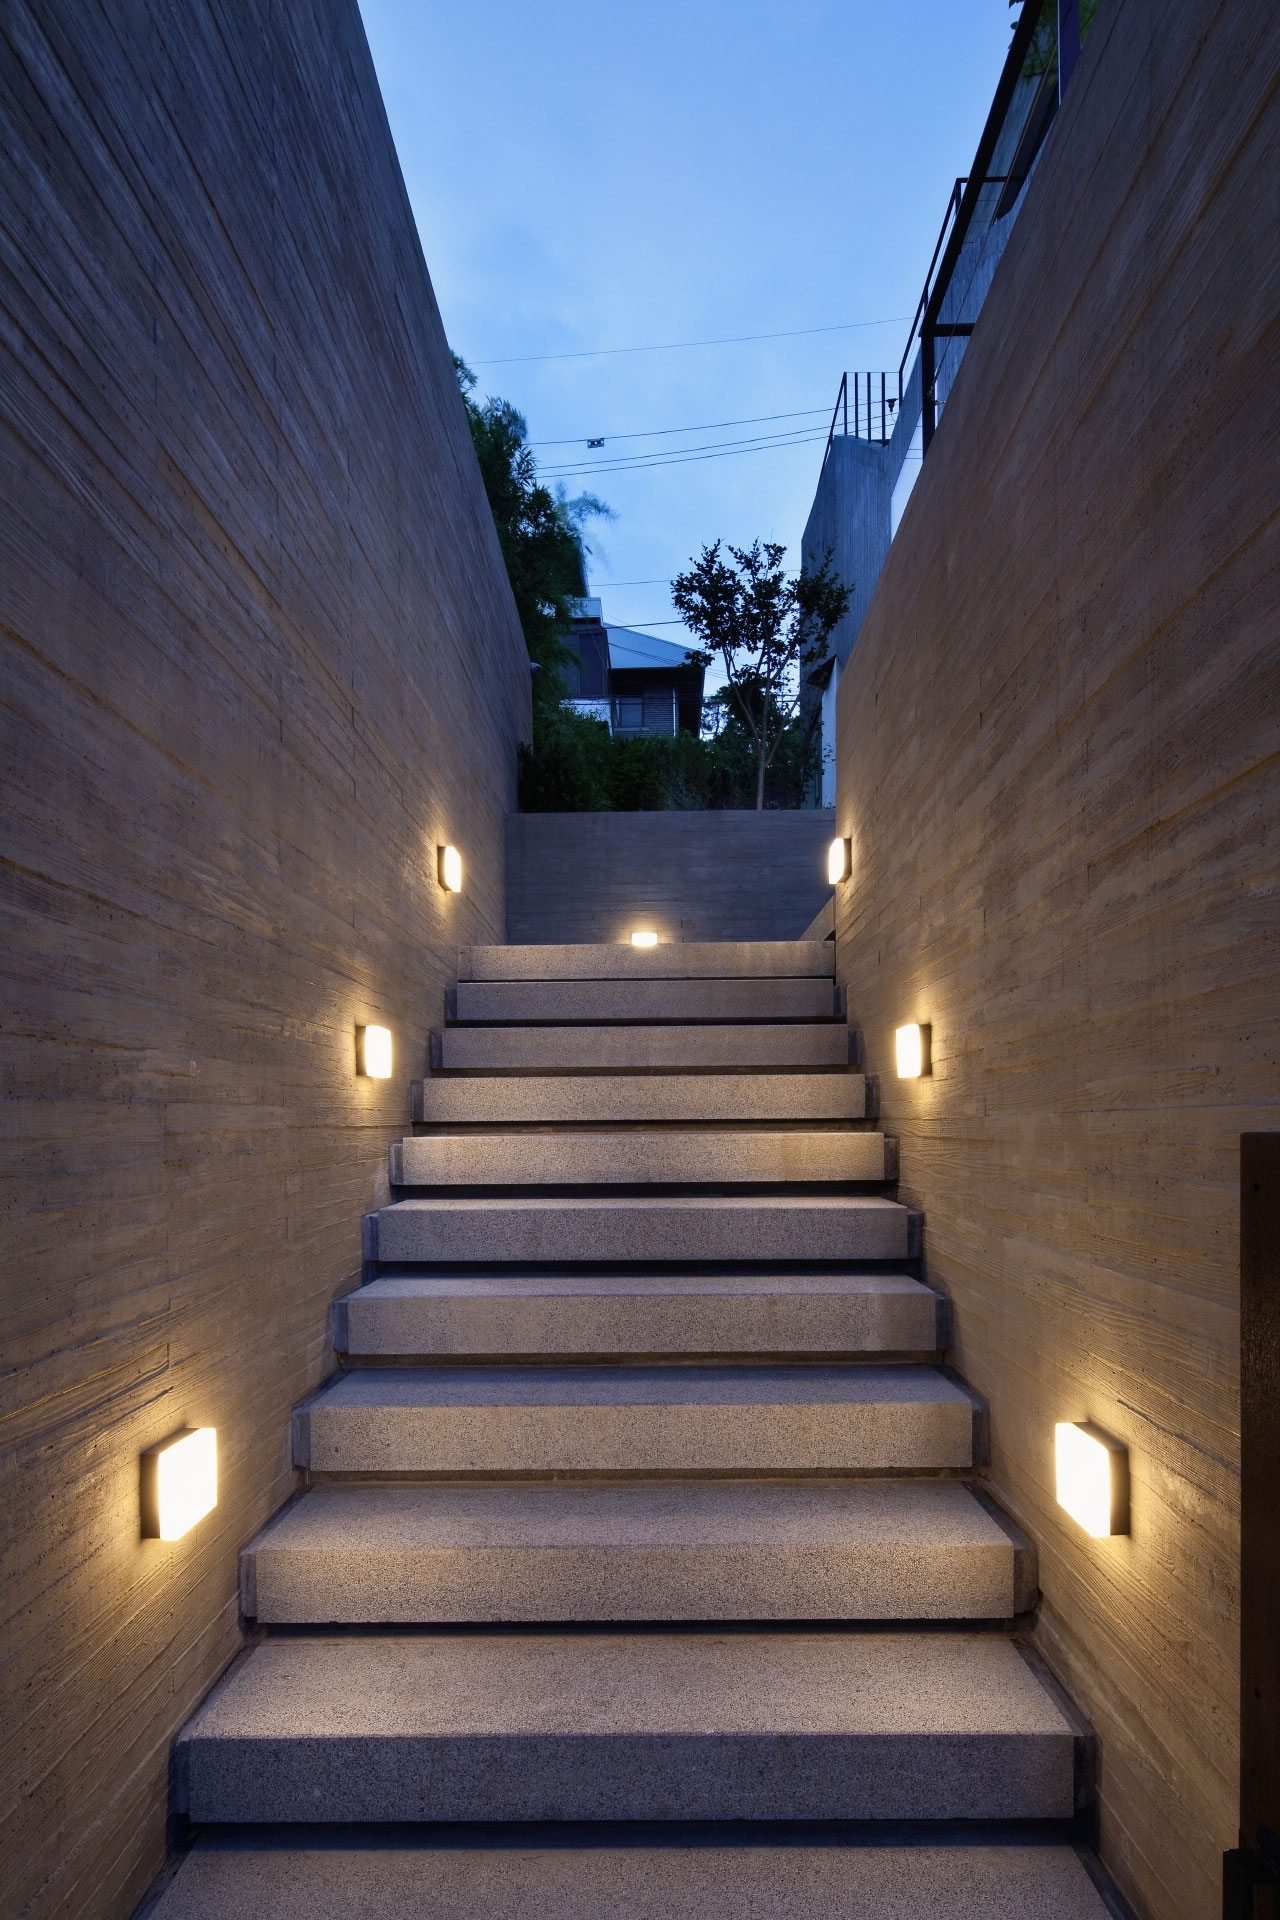 Trend Outdoor Wall Lights For Houses 92 For Your Outdoor Wall With Well Known Outdoor Wall Lights For Houses (View 15 of 20)